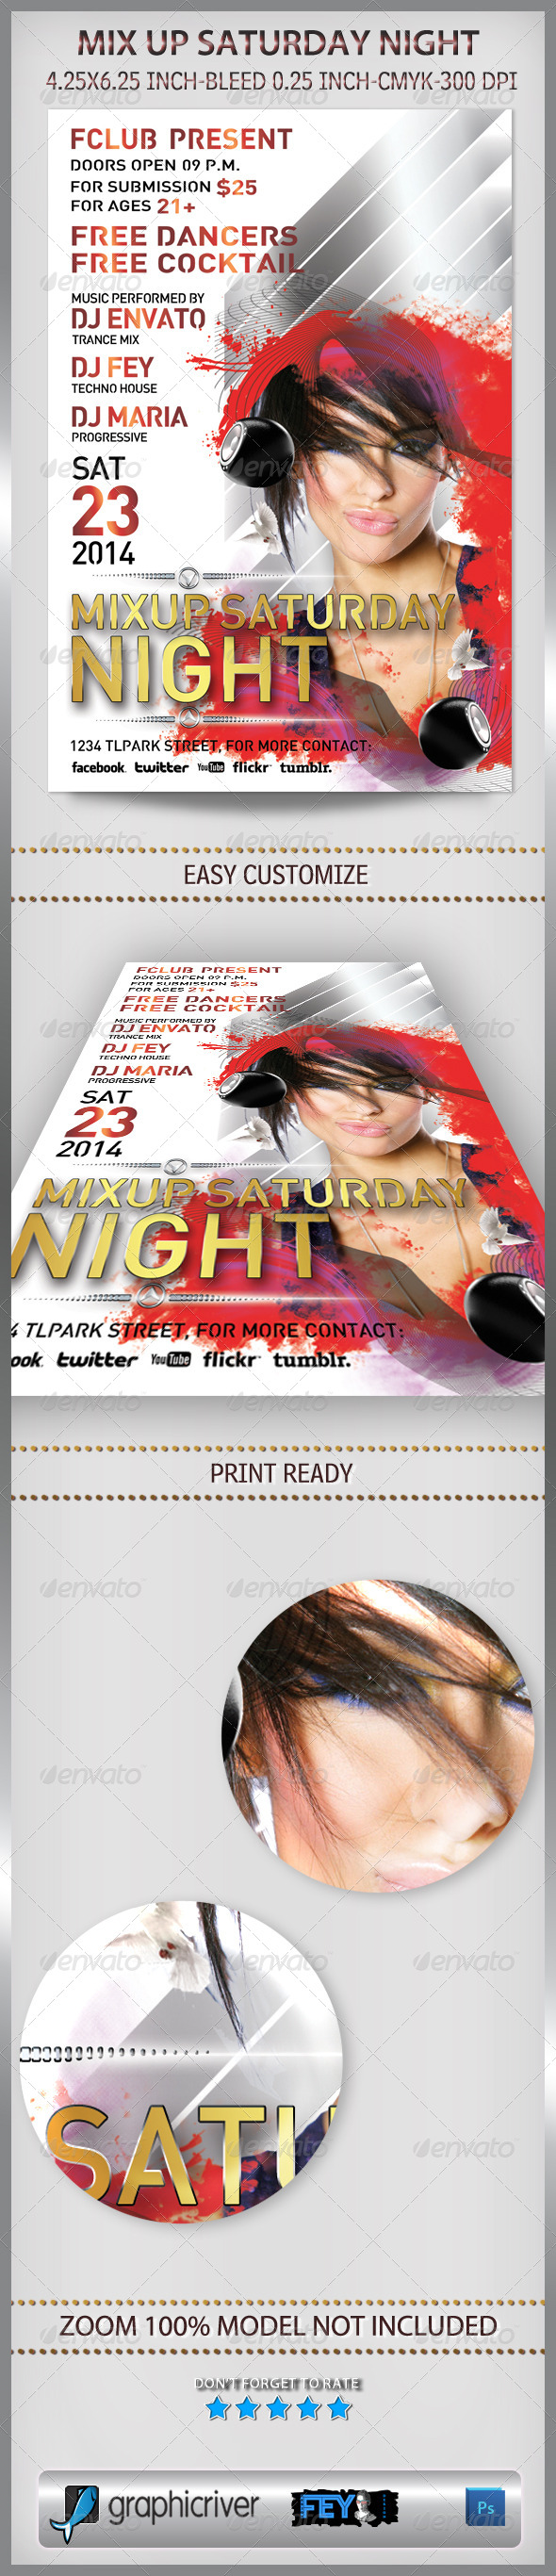 Mix Up Saturday Night Party Flyer - Flyers Print Templates